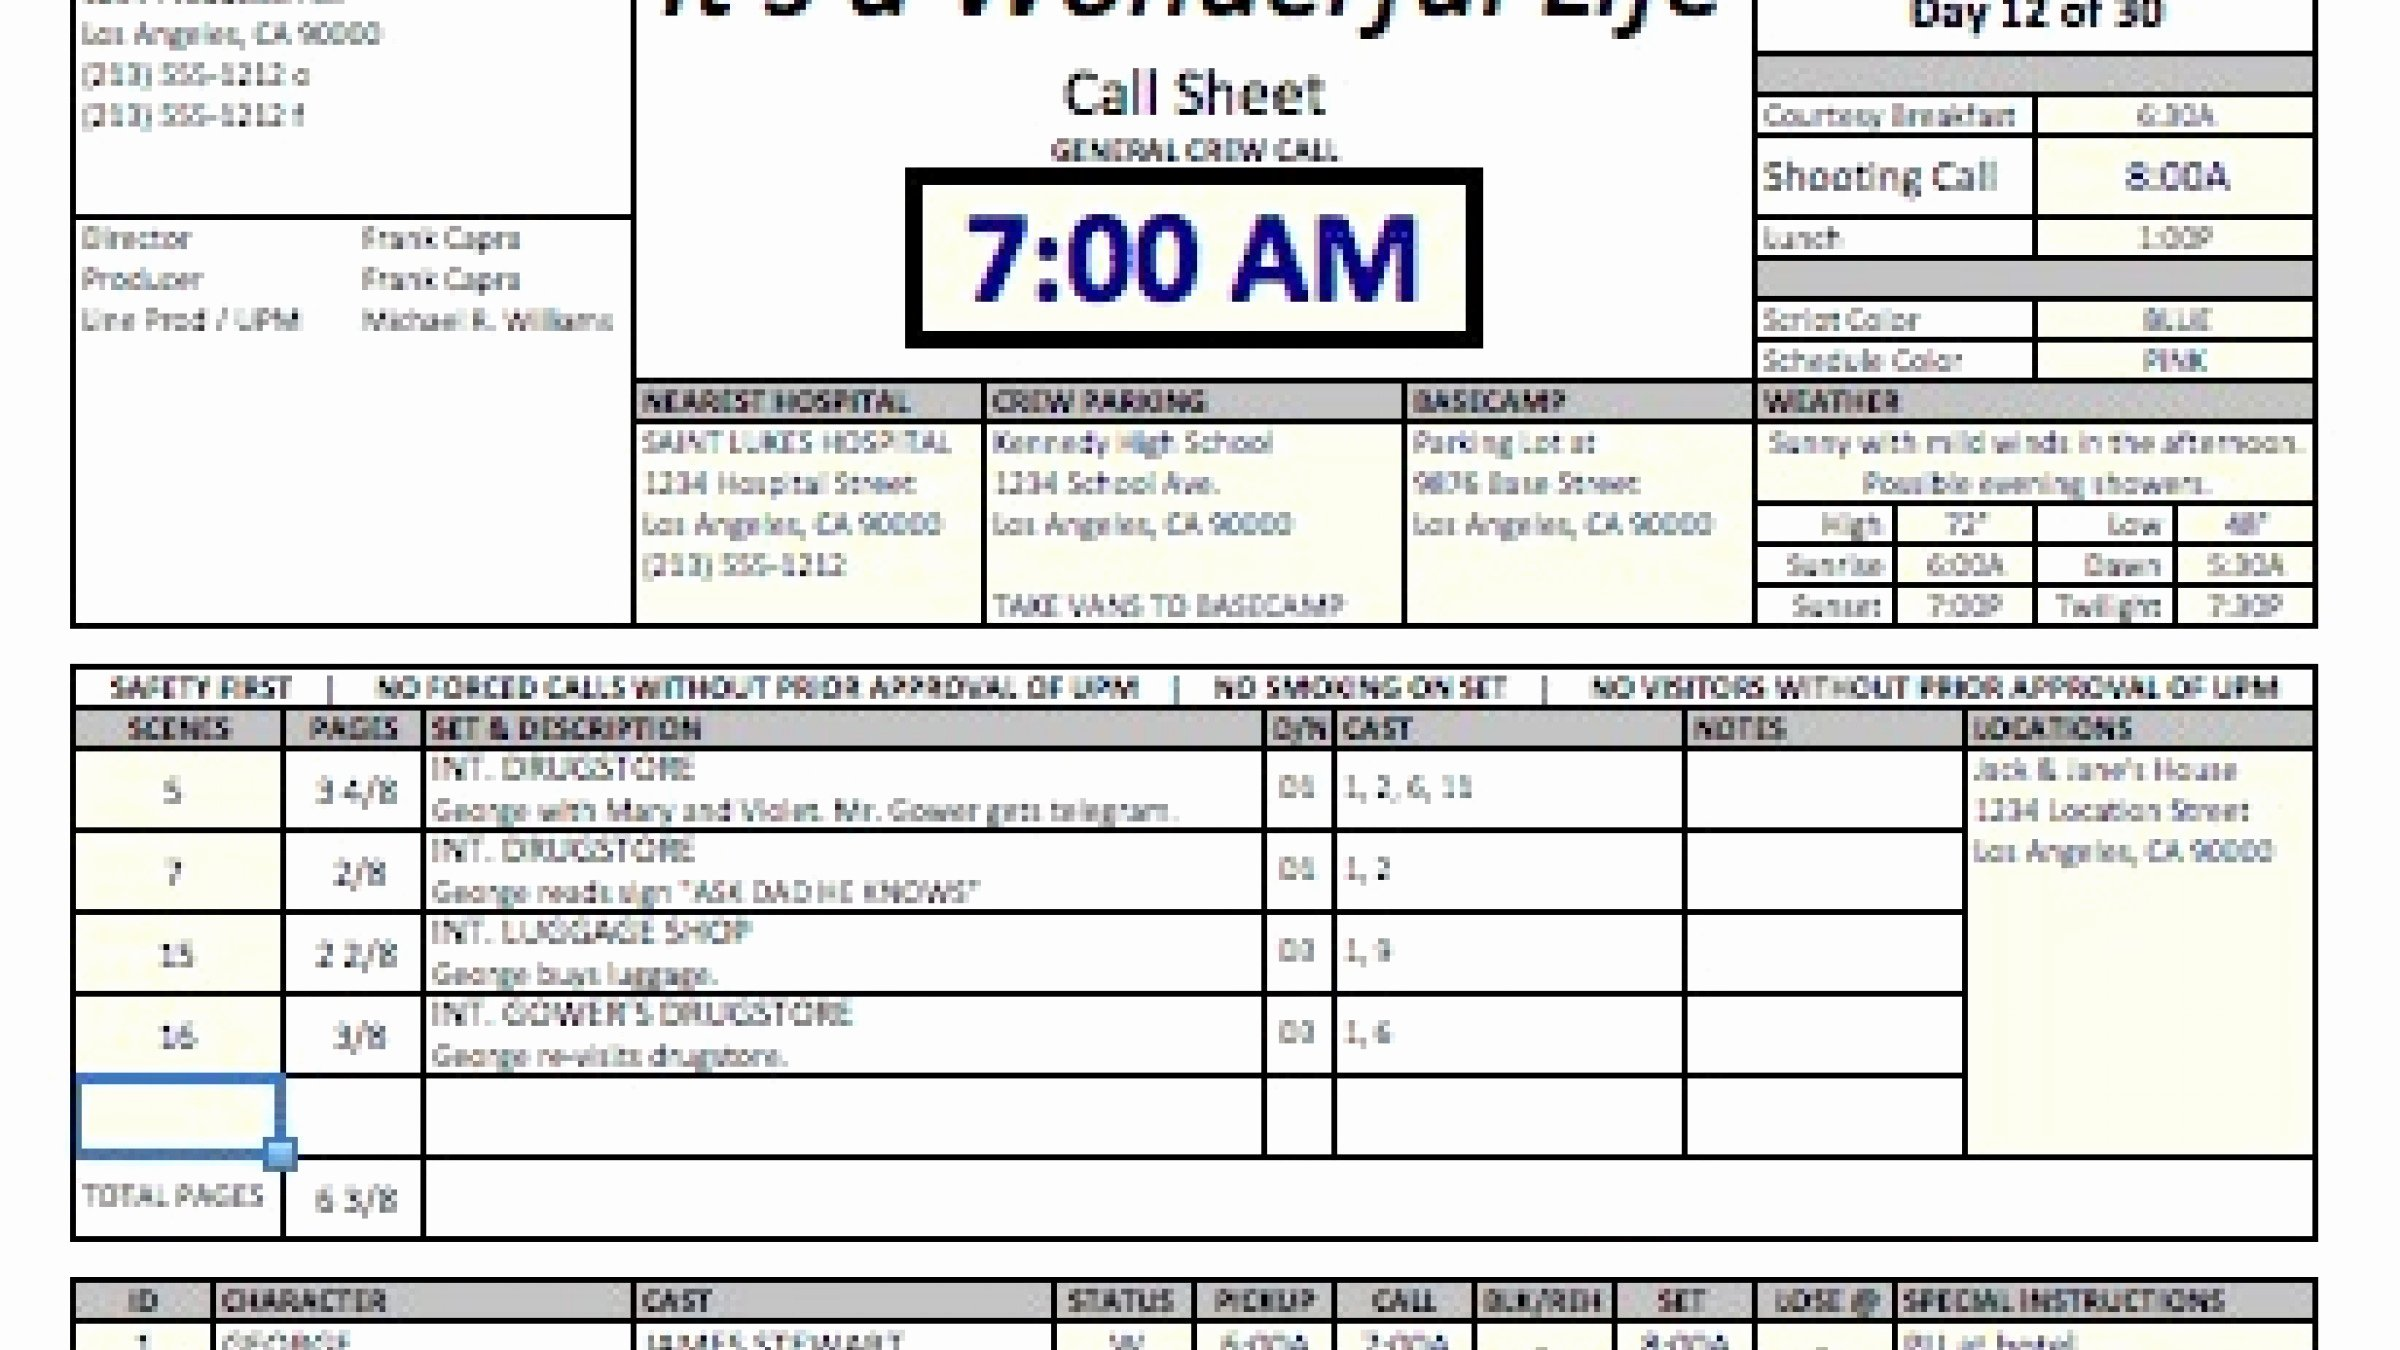 Football Play Call Sheet Template Excel Awesome Football Play Call Sheet Template Excel Gidiye